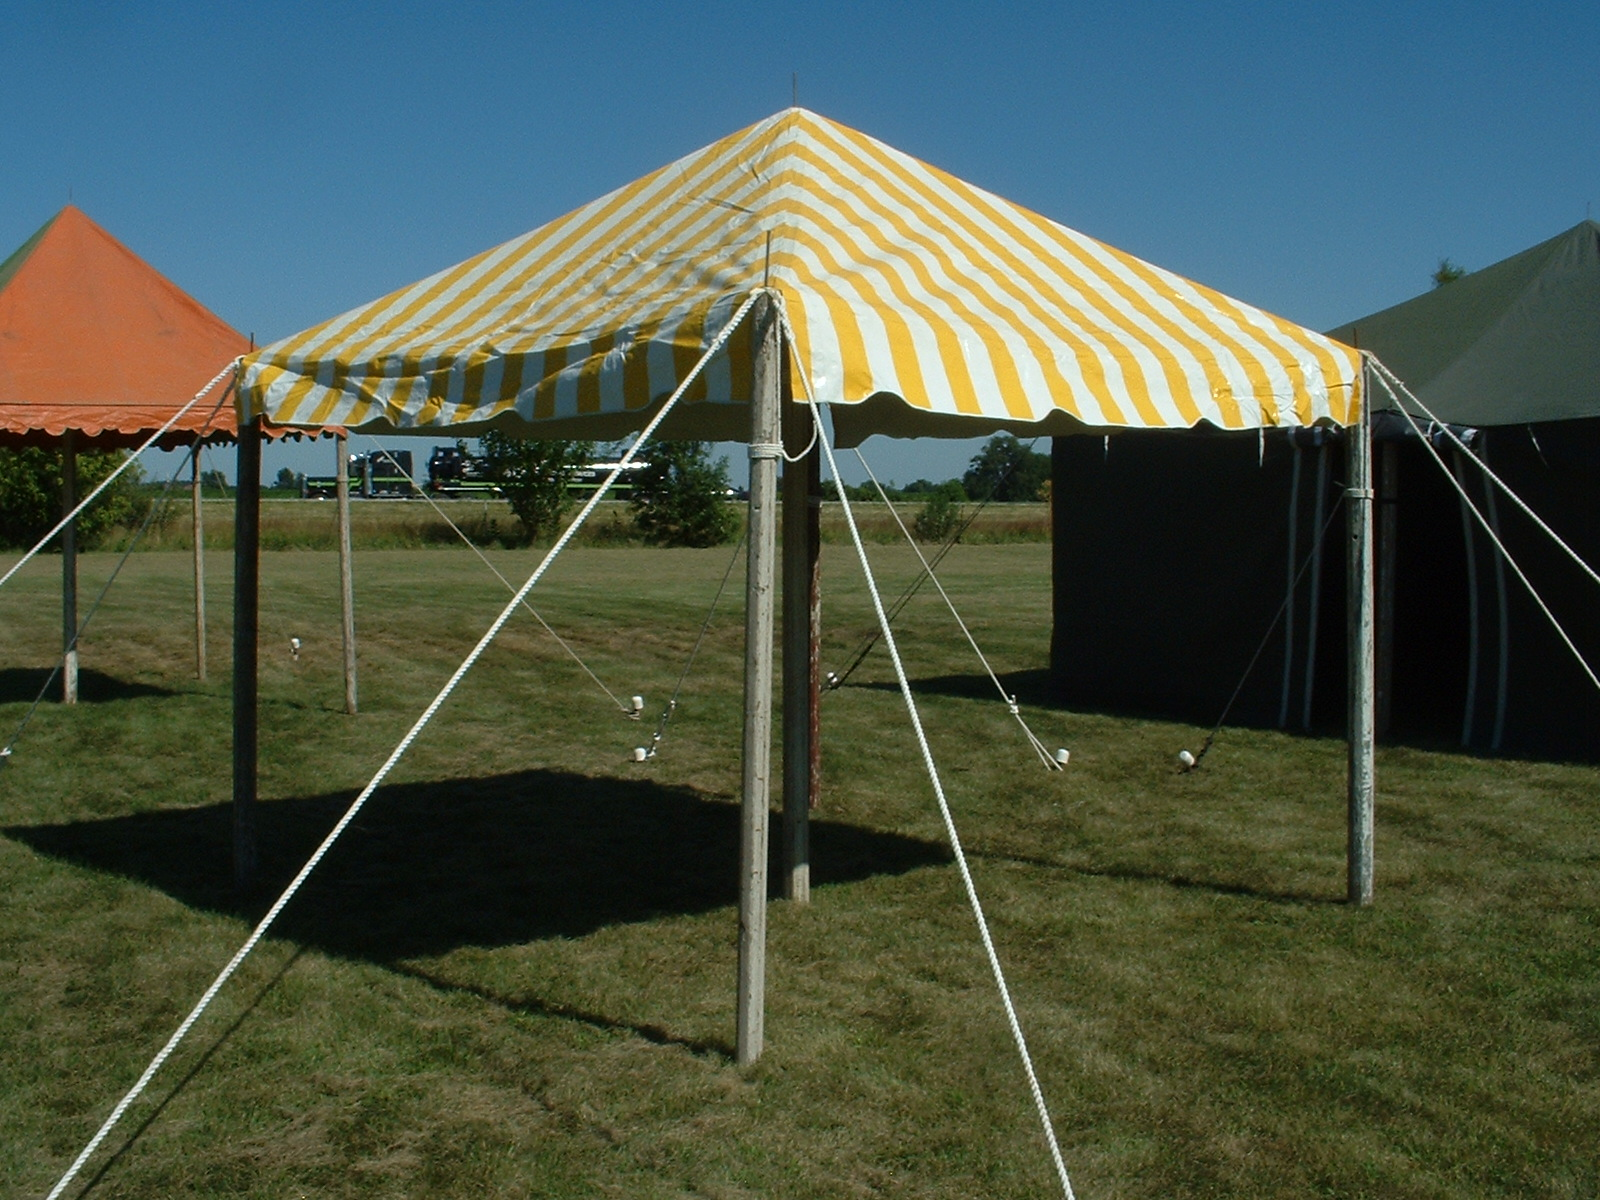 Used Gazebo Tent For Sale - New white 10x10 frame tents 1100 each